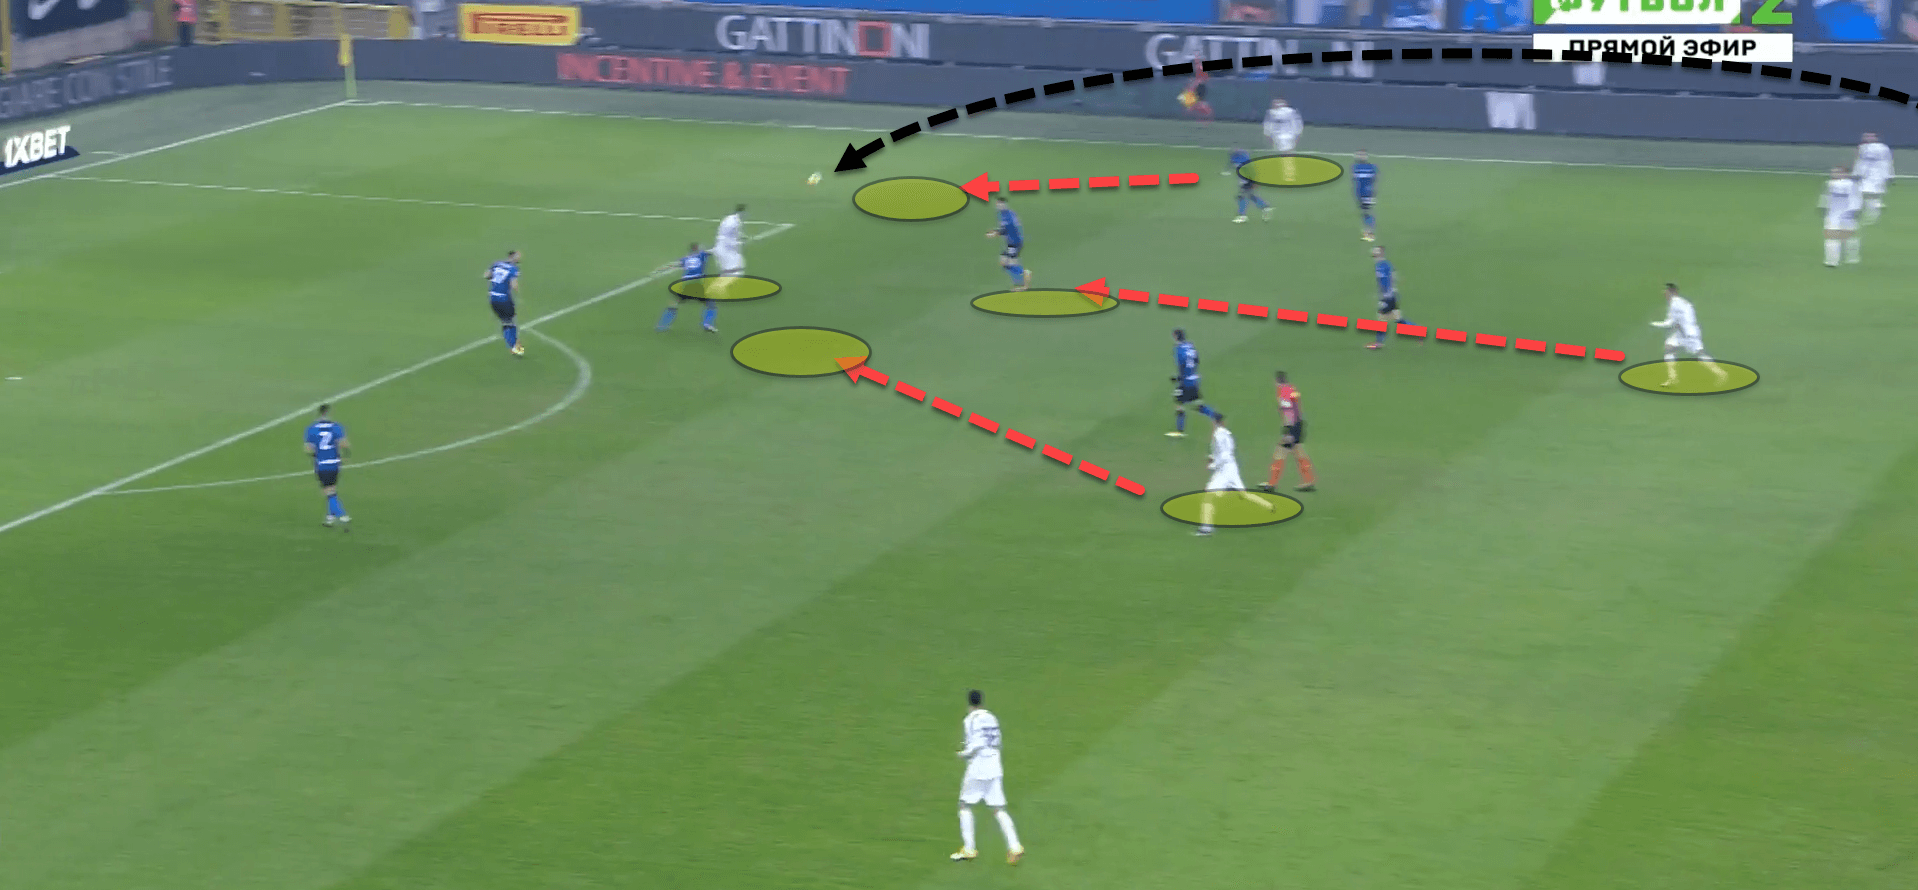 Possession, patience and pressing: How Juventus must set up tactically to overcome Inter in the Derby d'Italia – tactical analysis